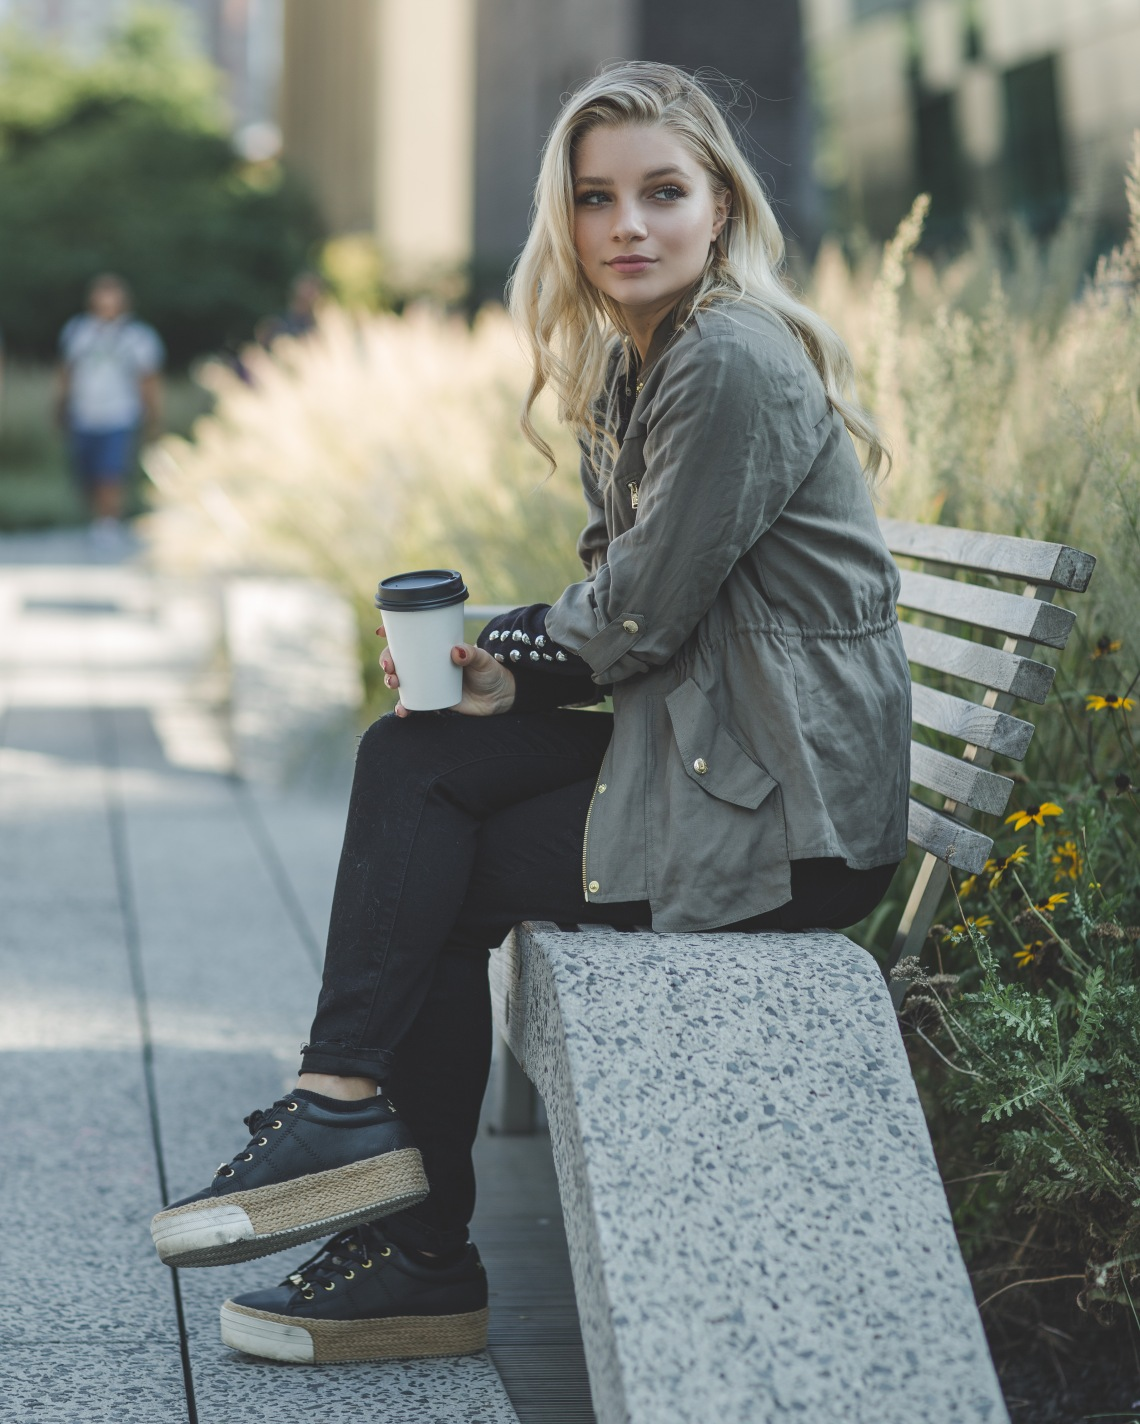 56 Deep Questions To Ask Yourself In Your 20s To Help You Find Out Who You Really Are